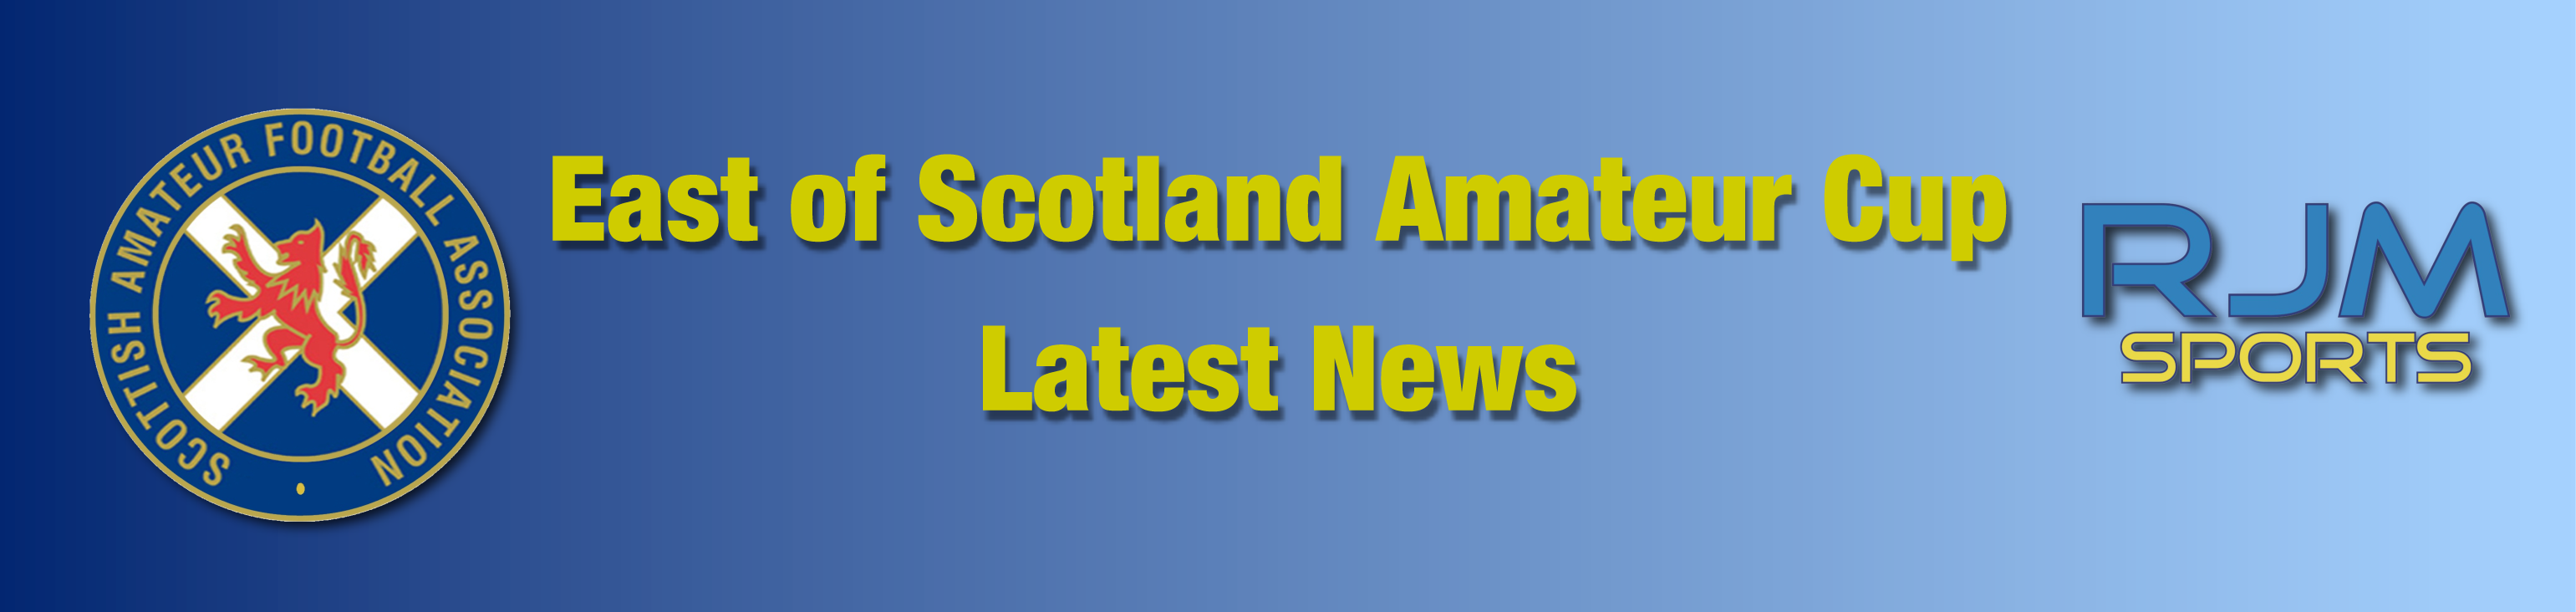 RJM Sports East of Scotland Amateur Cup Draw News